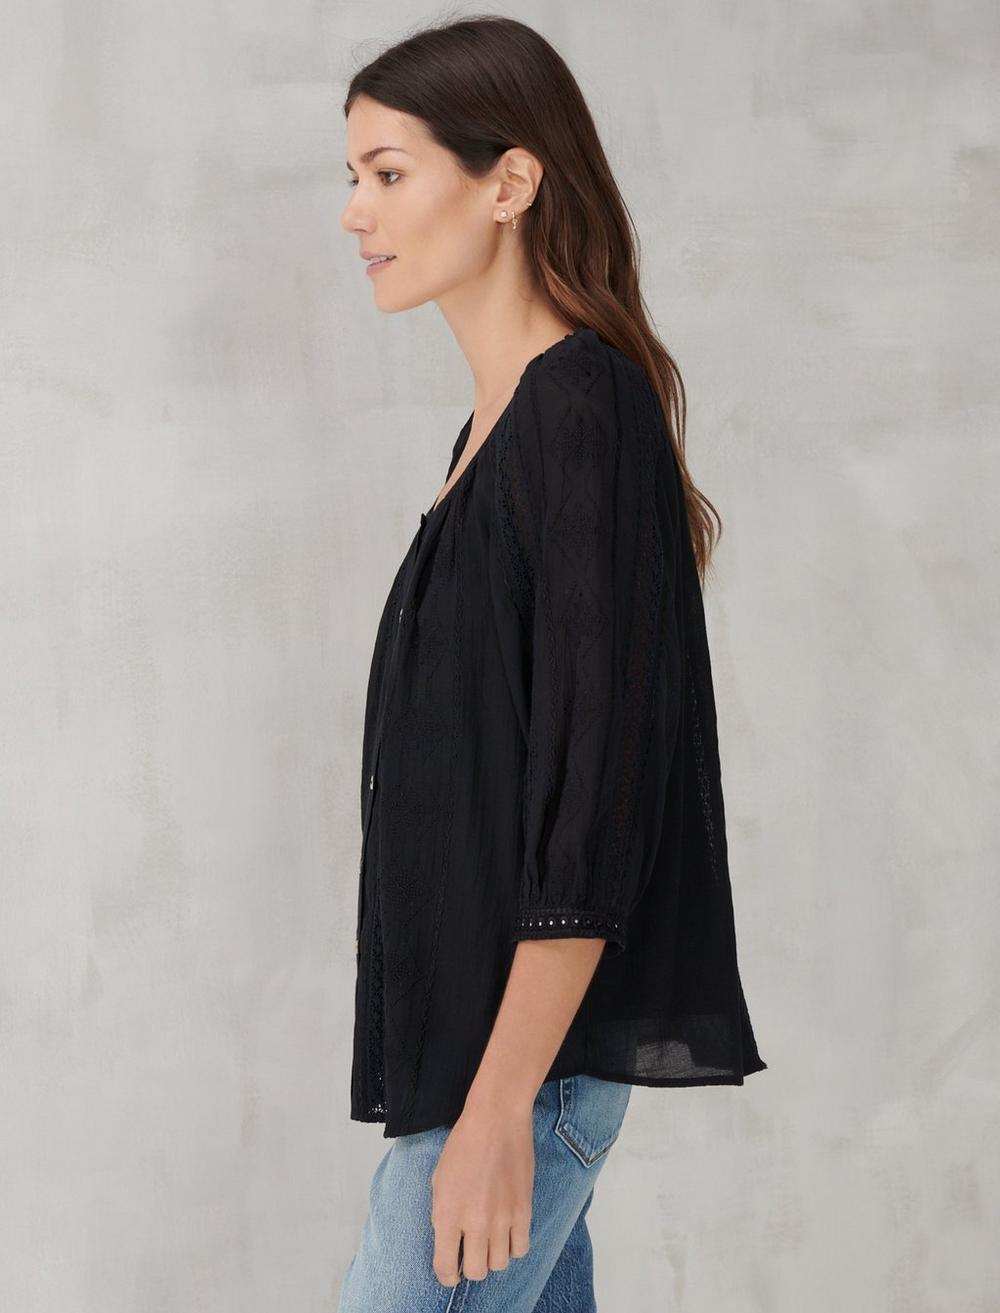 LACE INSET EMBROIDERED BUTTON TOP, image 3